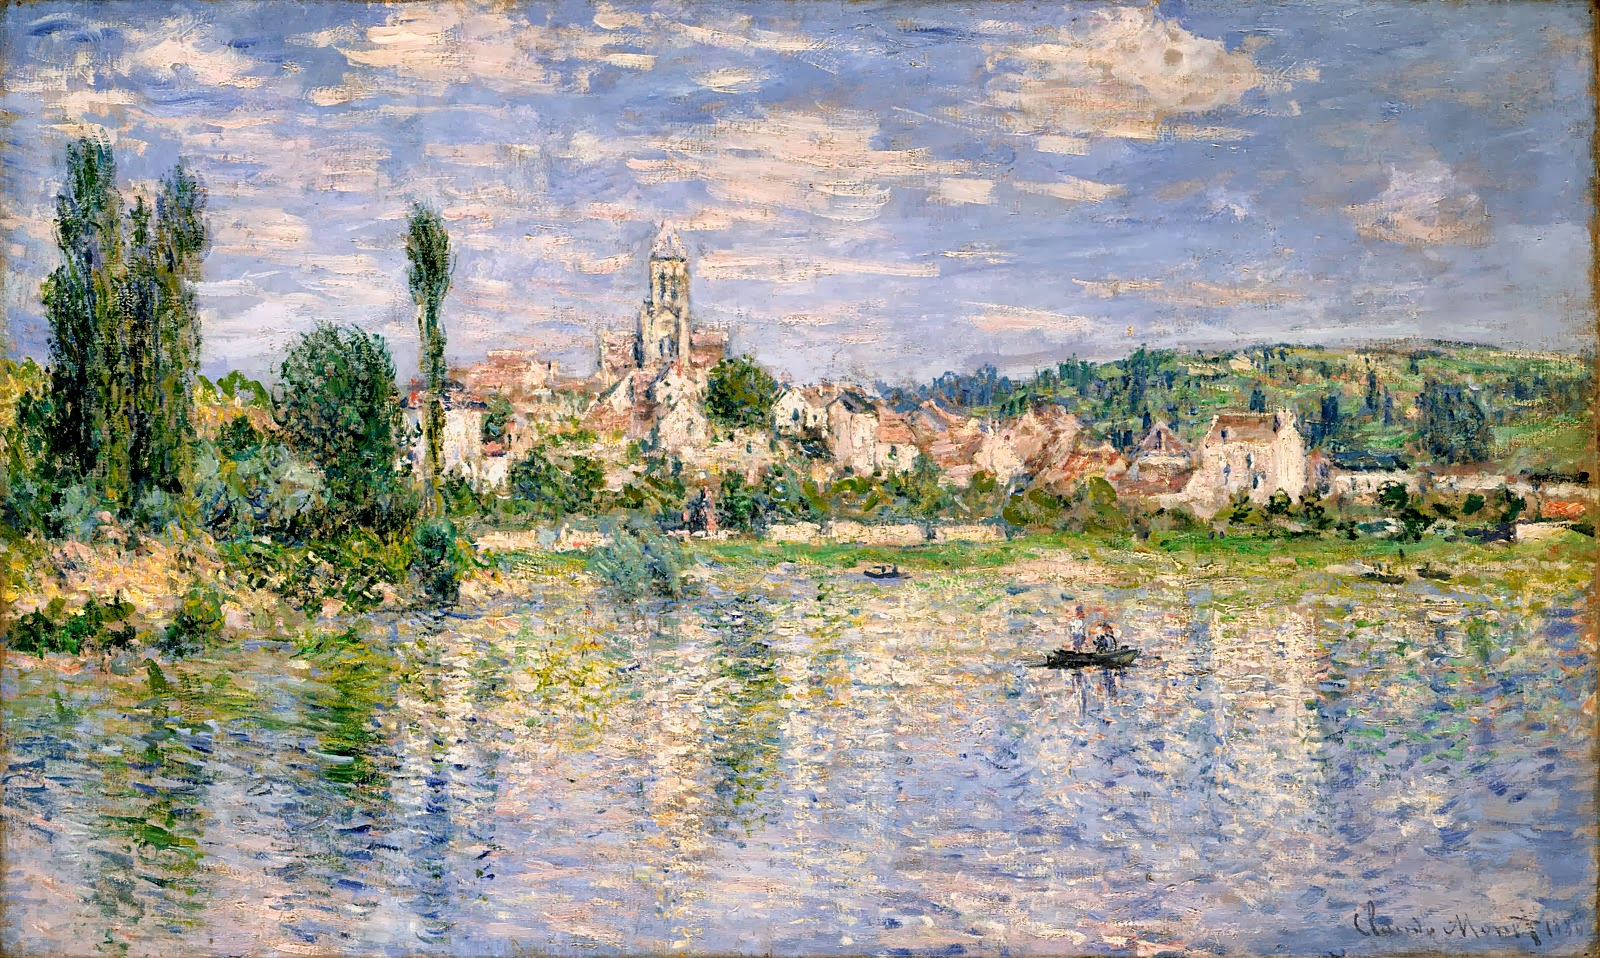 art artists claude monet part  claude monet 1880 veacutetheuil in summer oil on canvas 60 x 99 7 cm national gallery of art washington d c